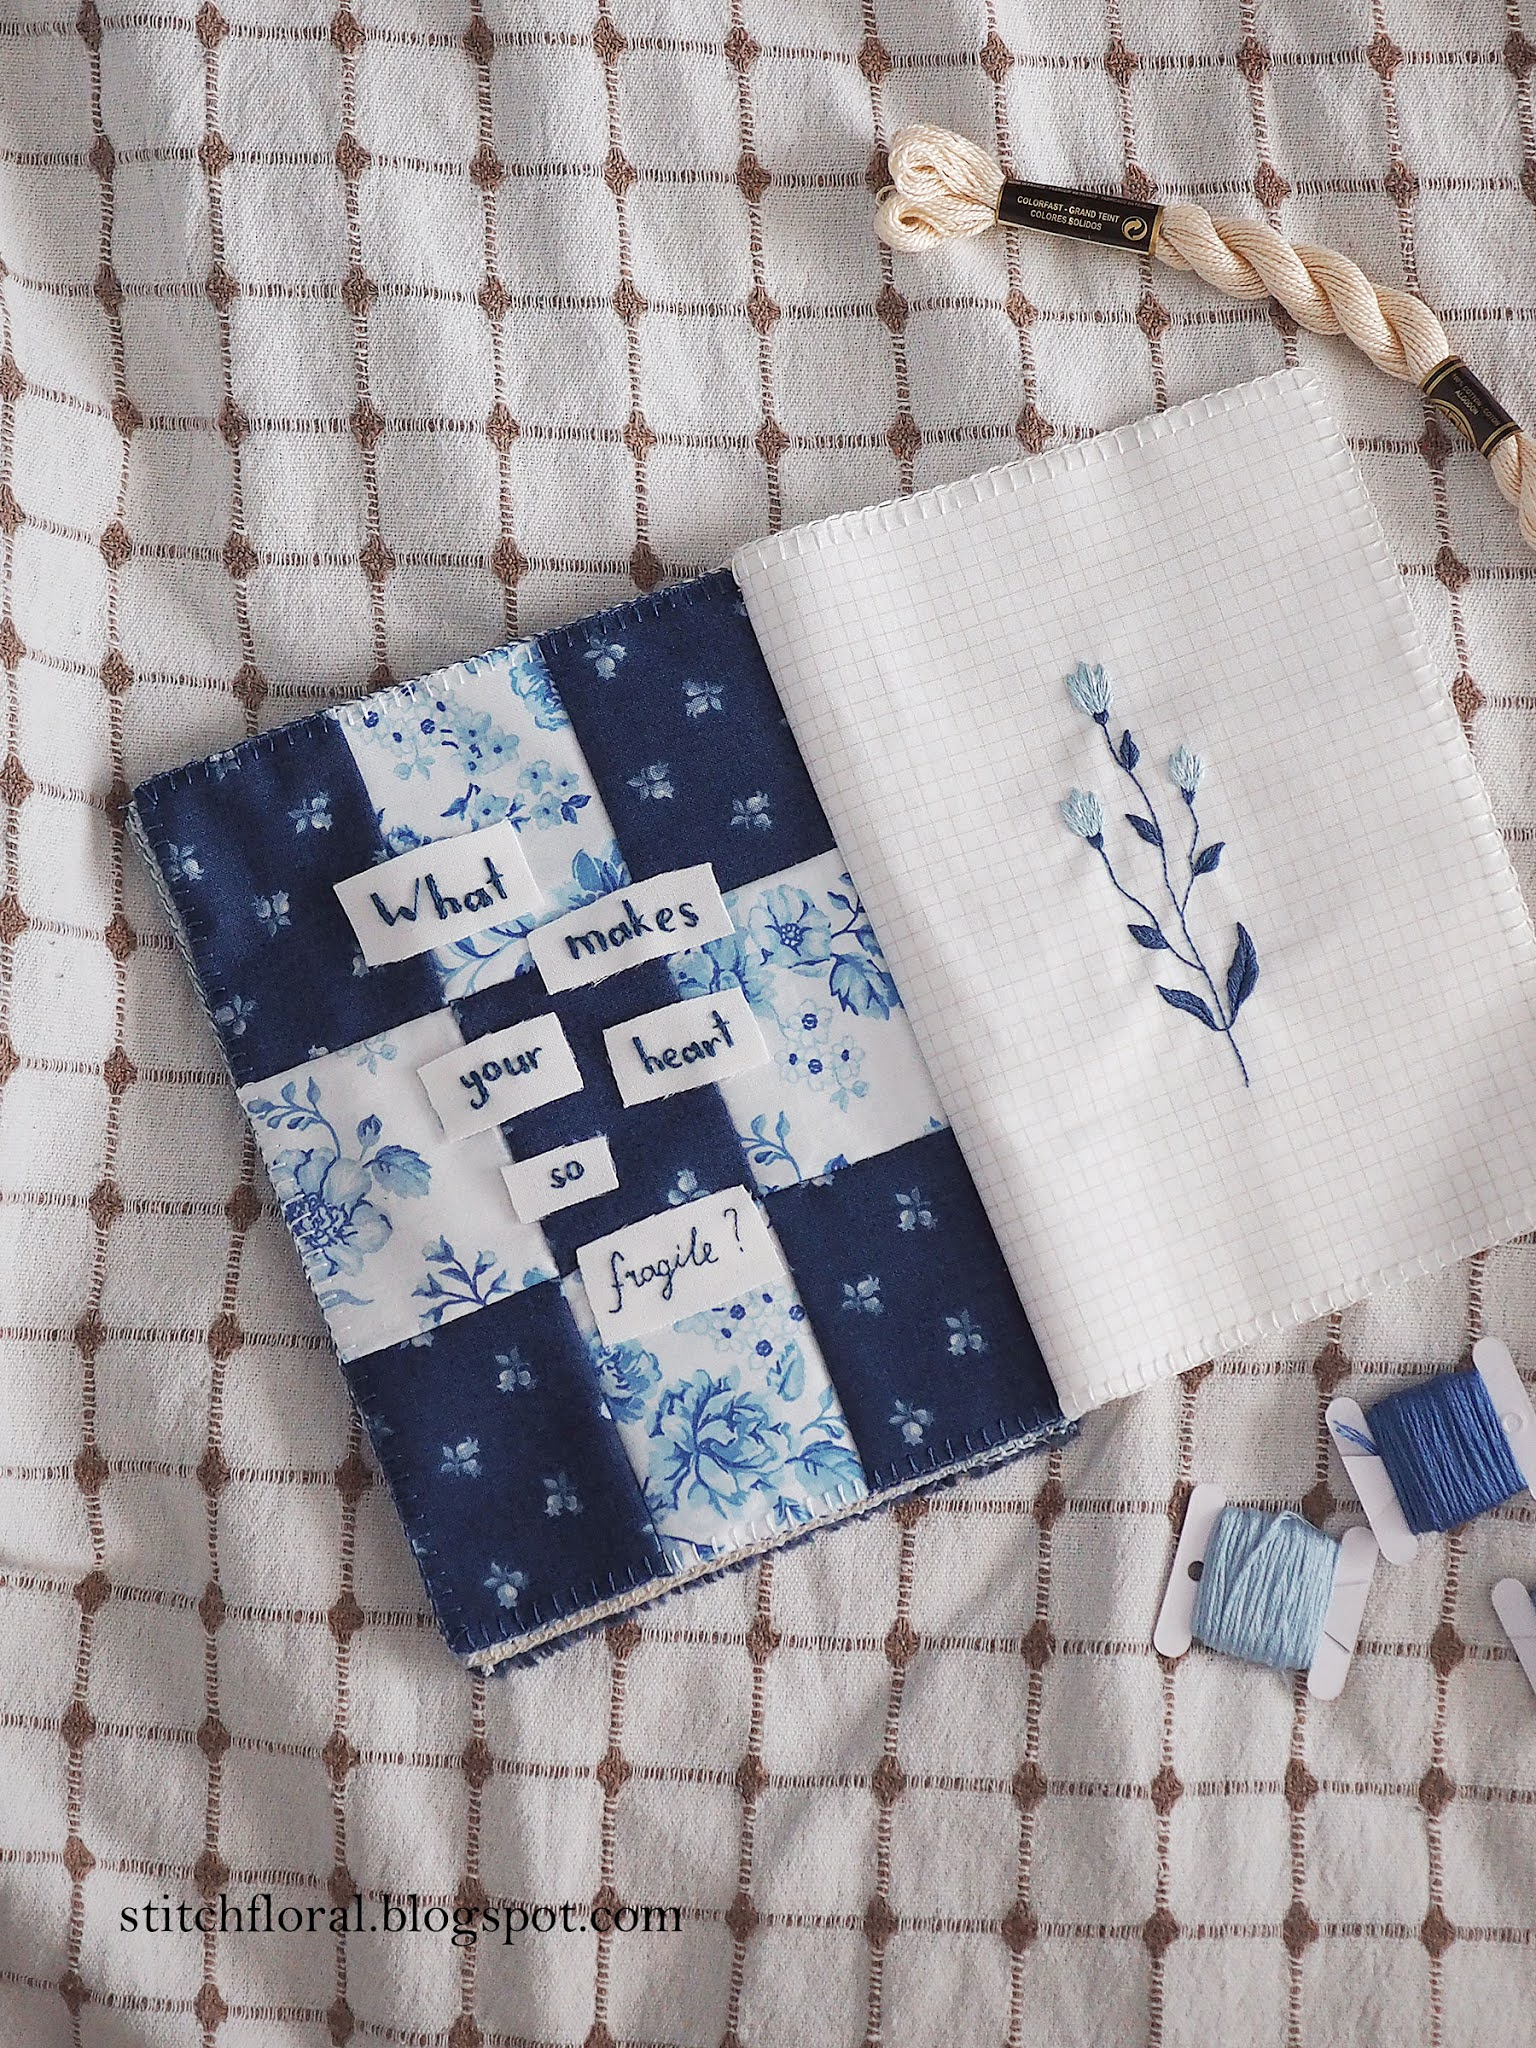 patchwork embroidery journal